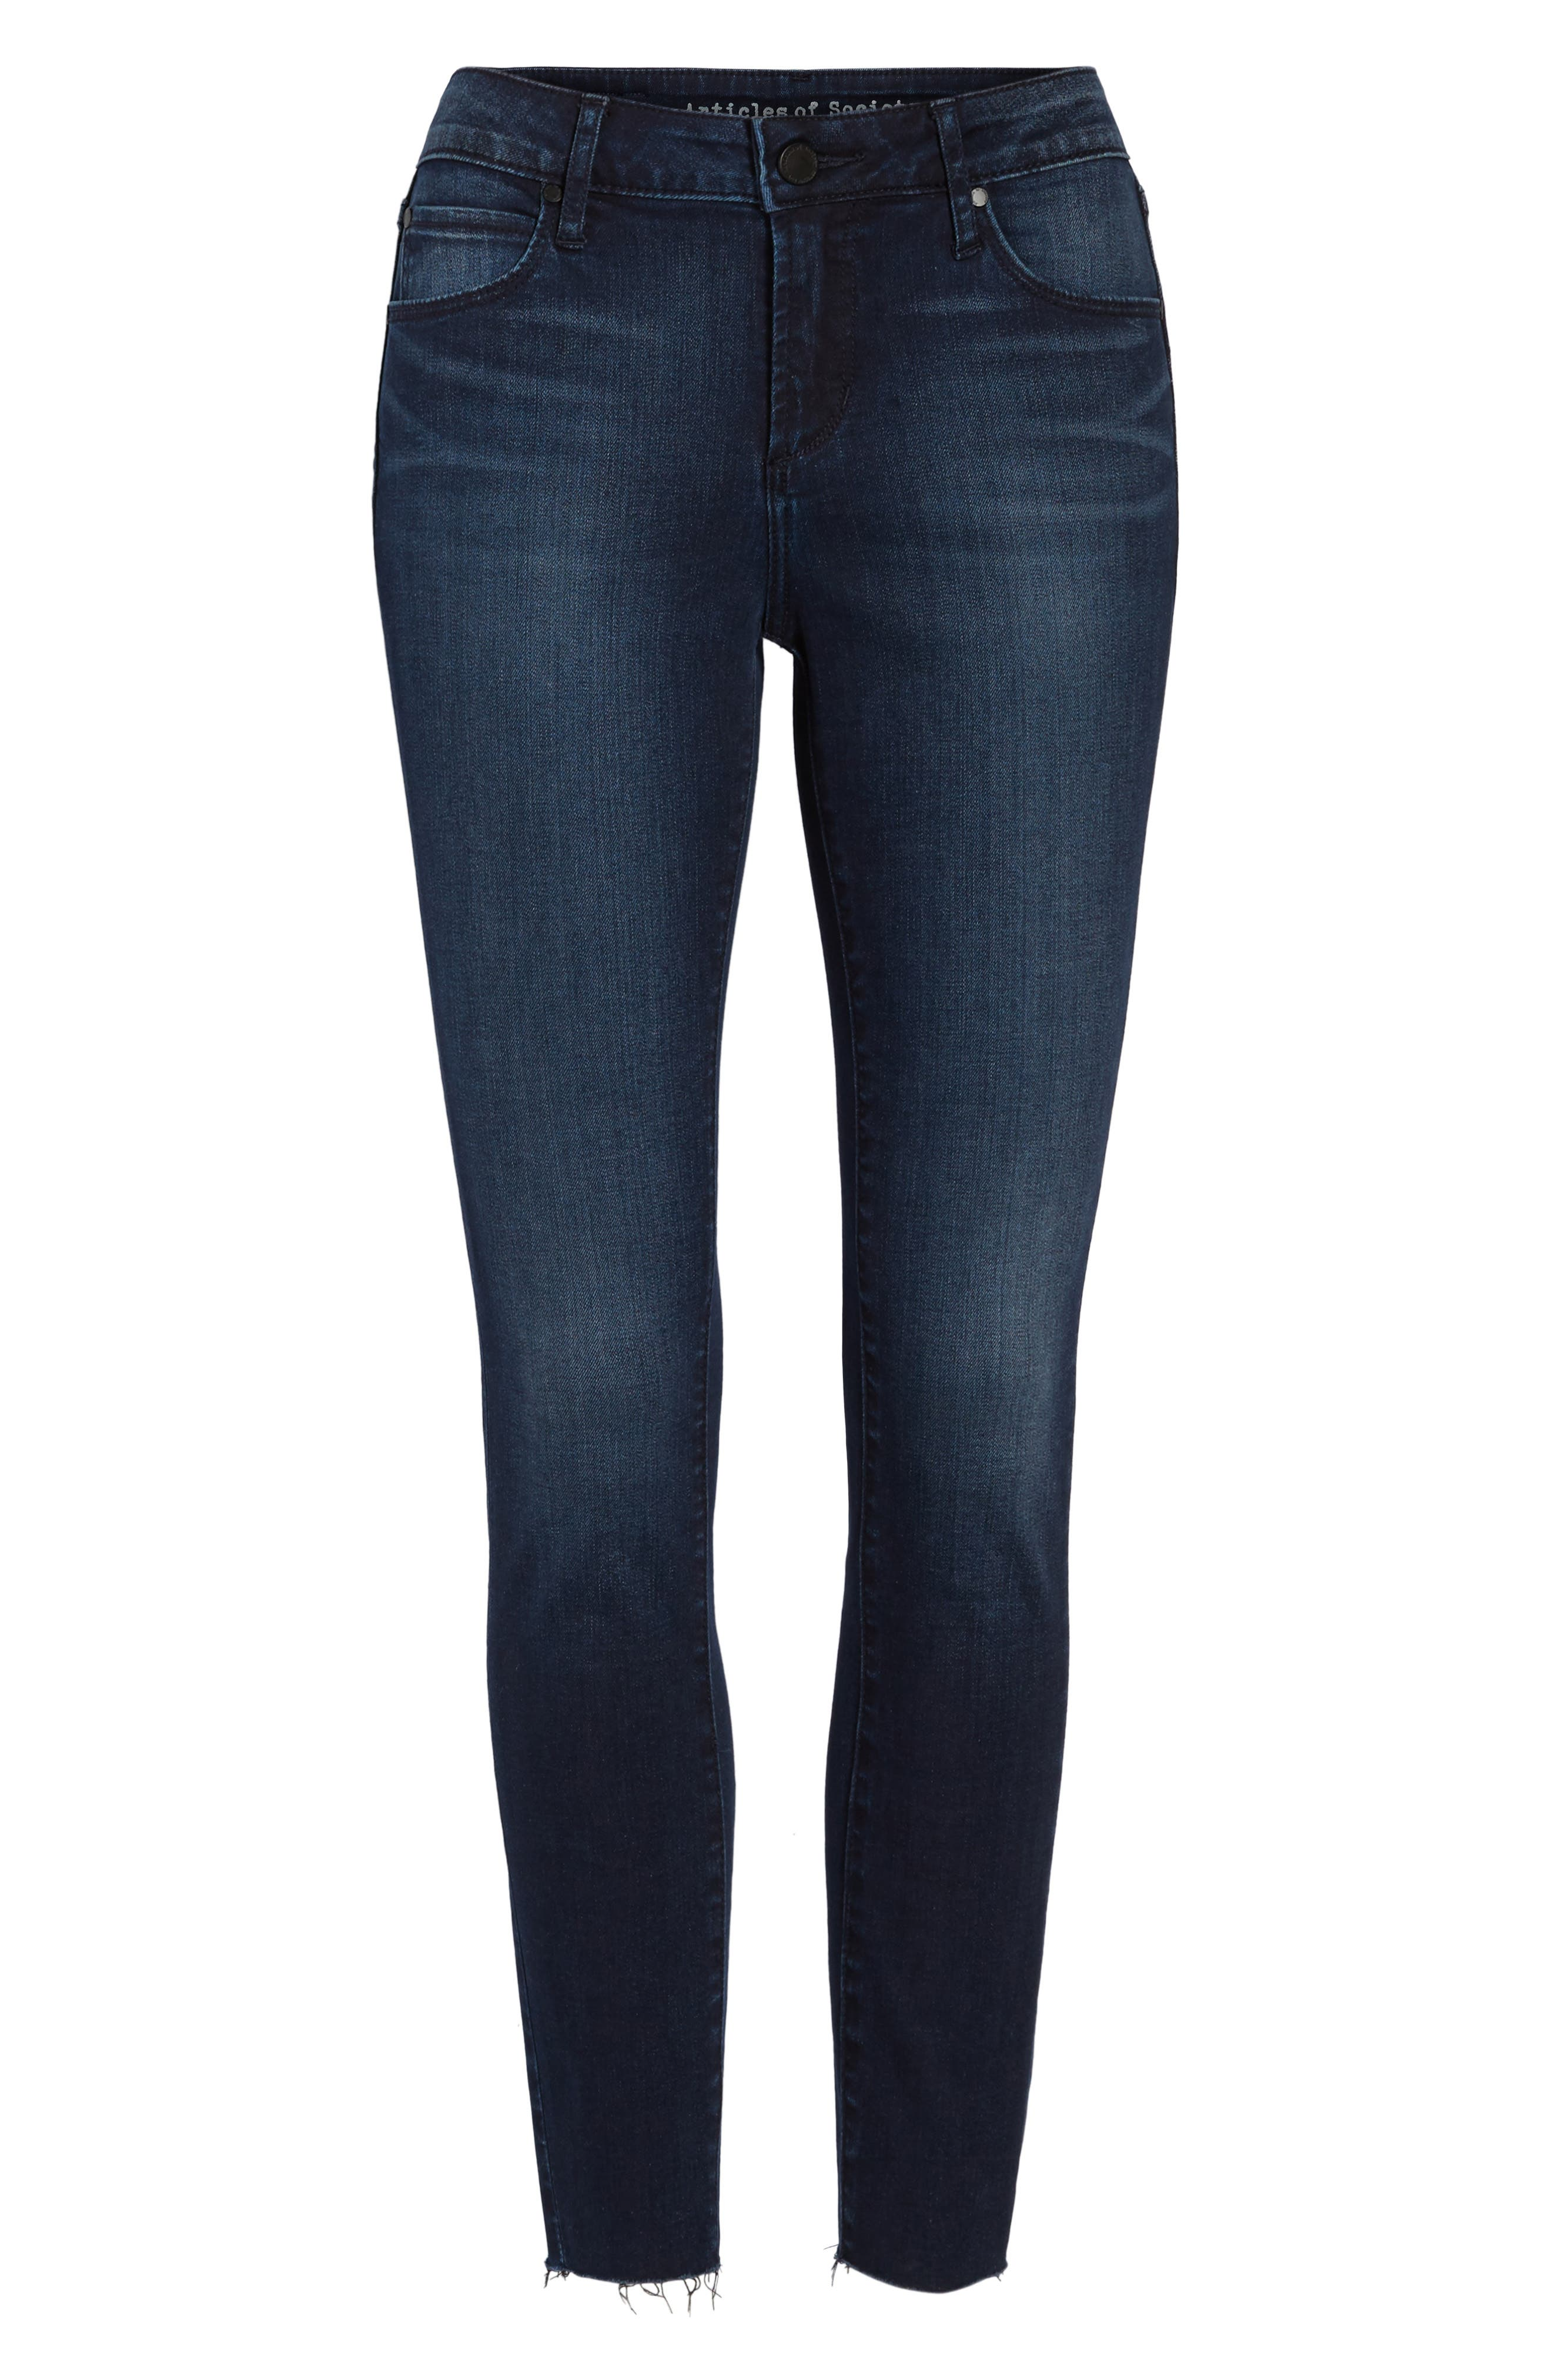 ARTICLES OF SOCIETY,                             Carly Crop Skinny Jeans,                             Alternate thumbnail 7, color,                             499